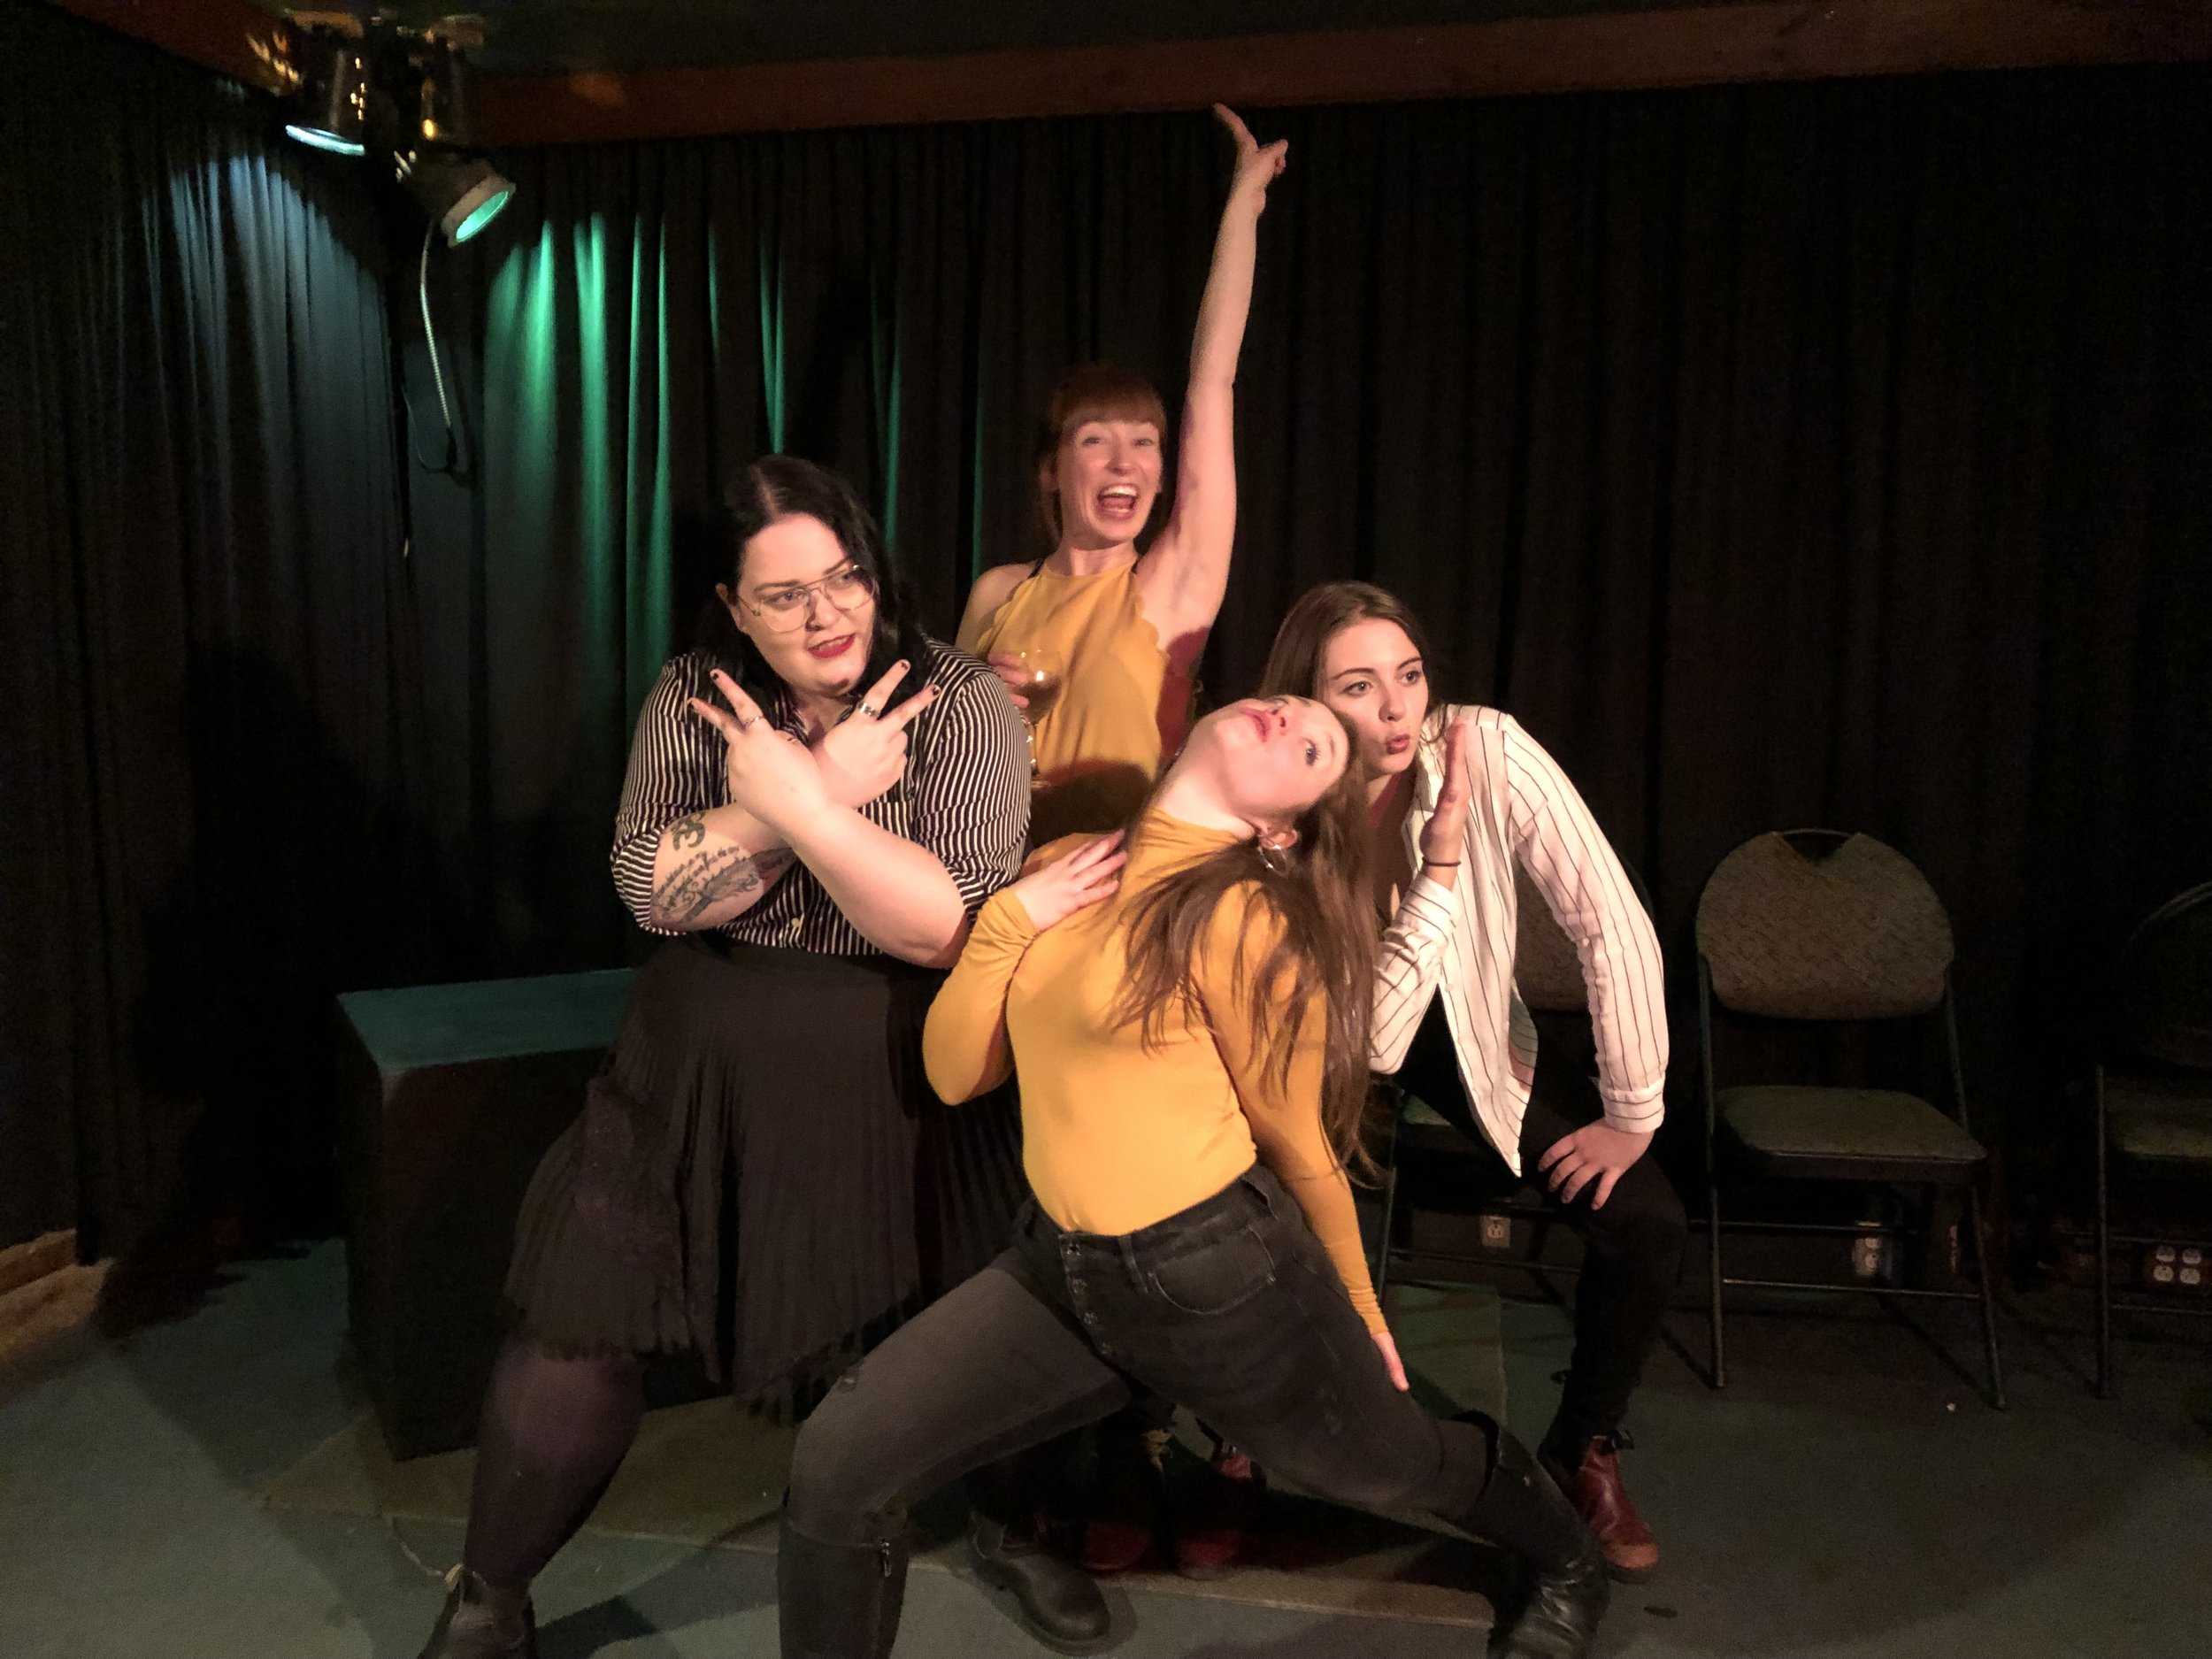 The hilarious ladies of Fully Gorgeous